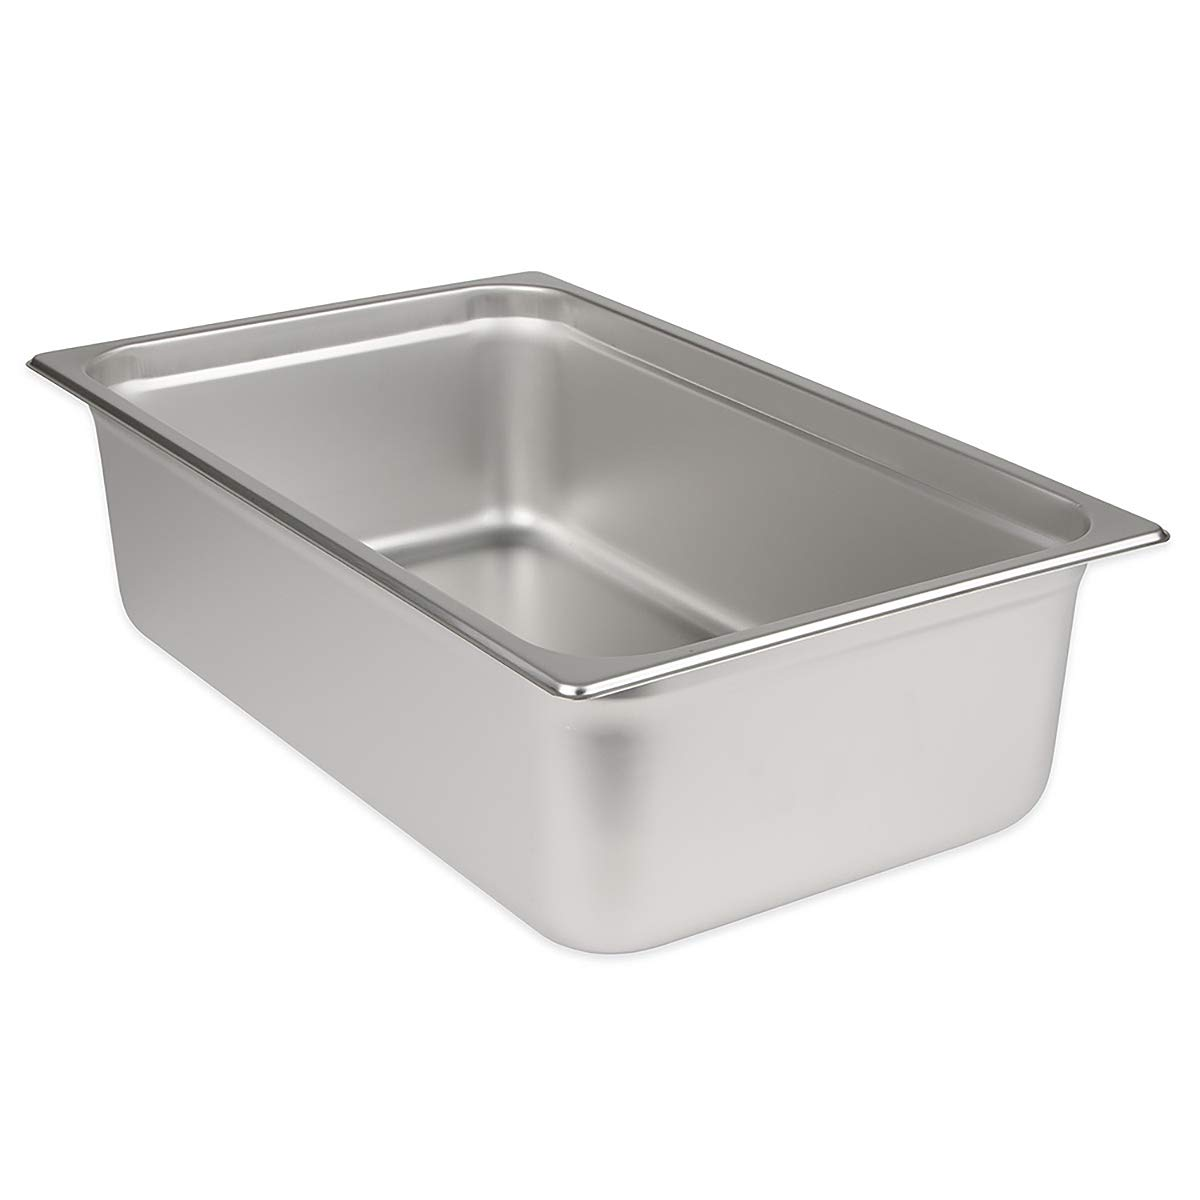 Update International SPH-1006 6-Inch Full-Size Anti-Jam Steam Table Pan, Silver UPDSPH1006